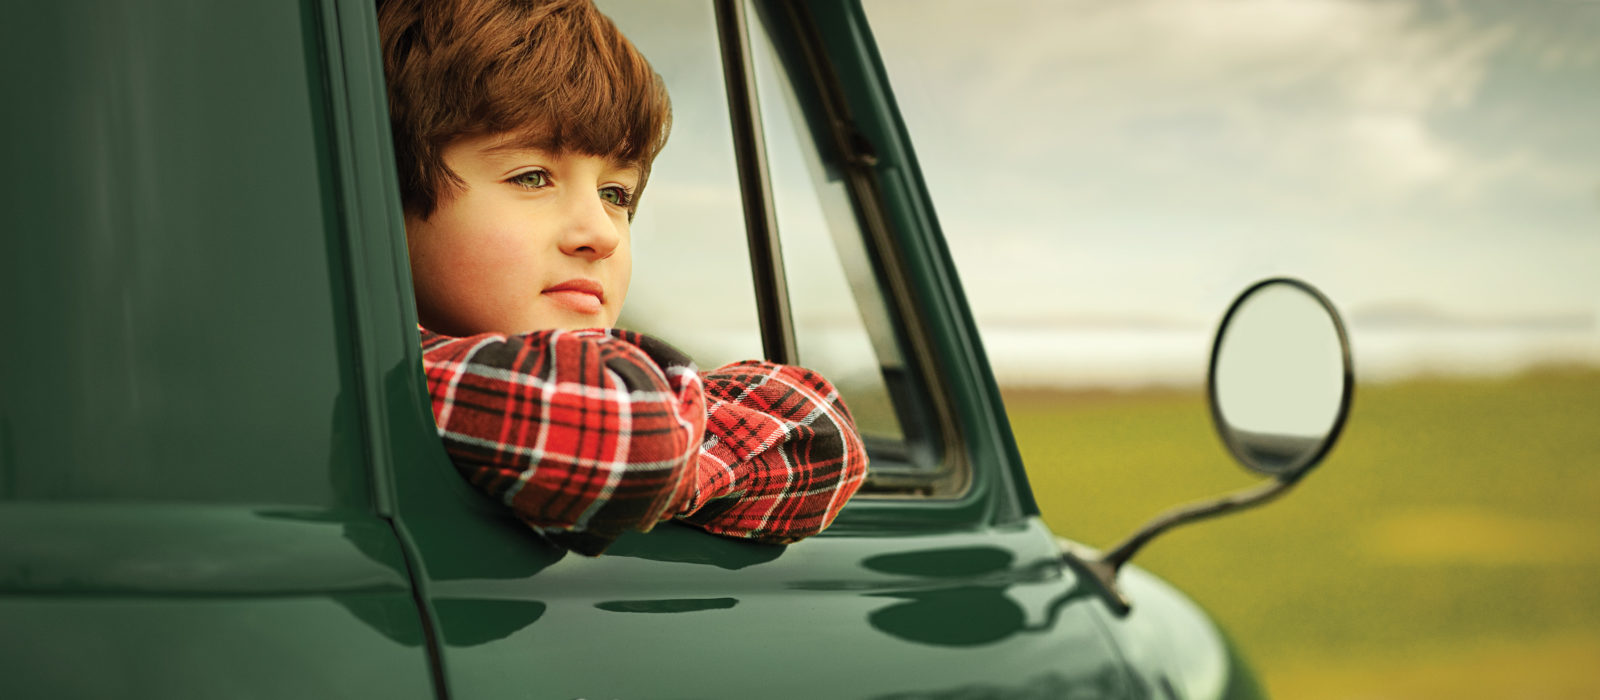 Boy in red plaid shirt looking out the American AgCredit truck window